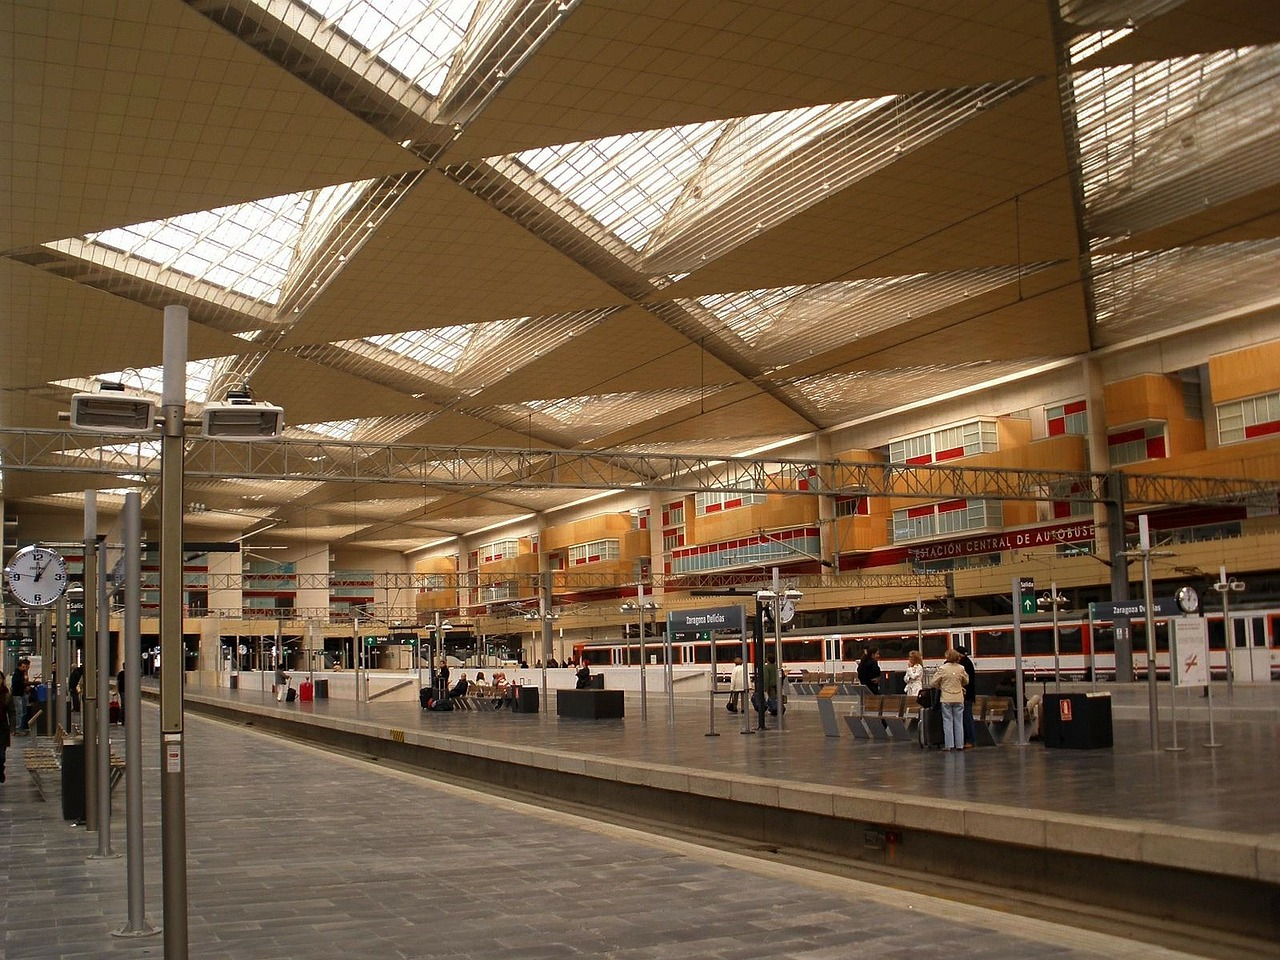 zaragoza spain train station free photo